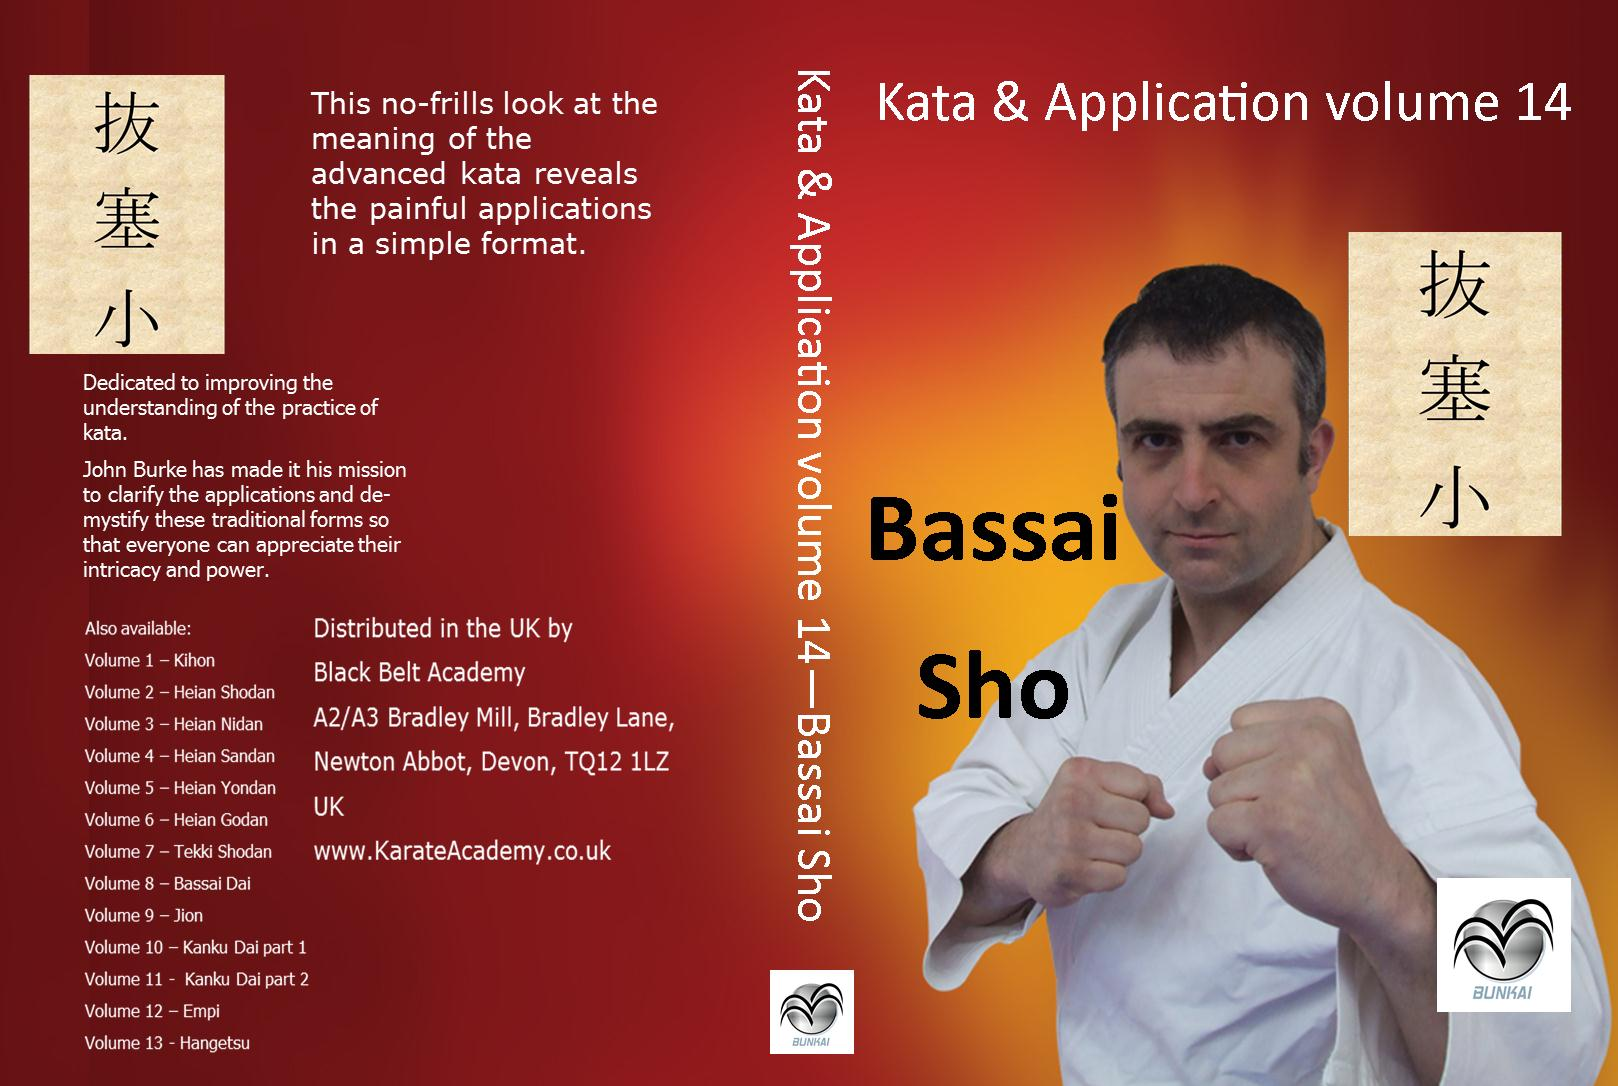 bassai sho kata bunkai applications